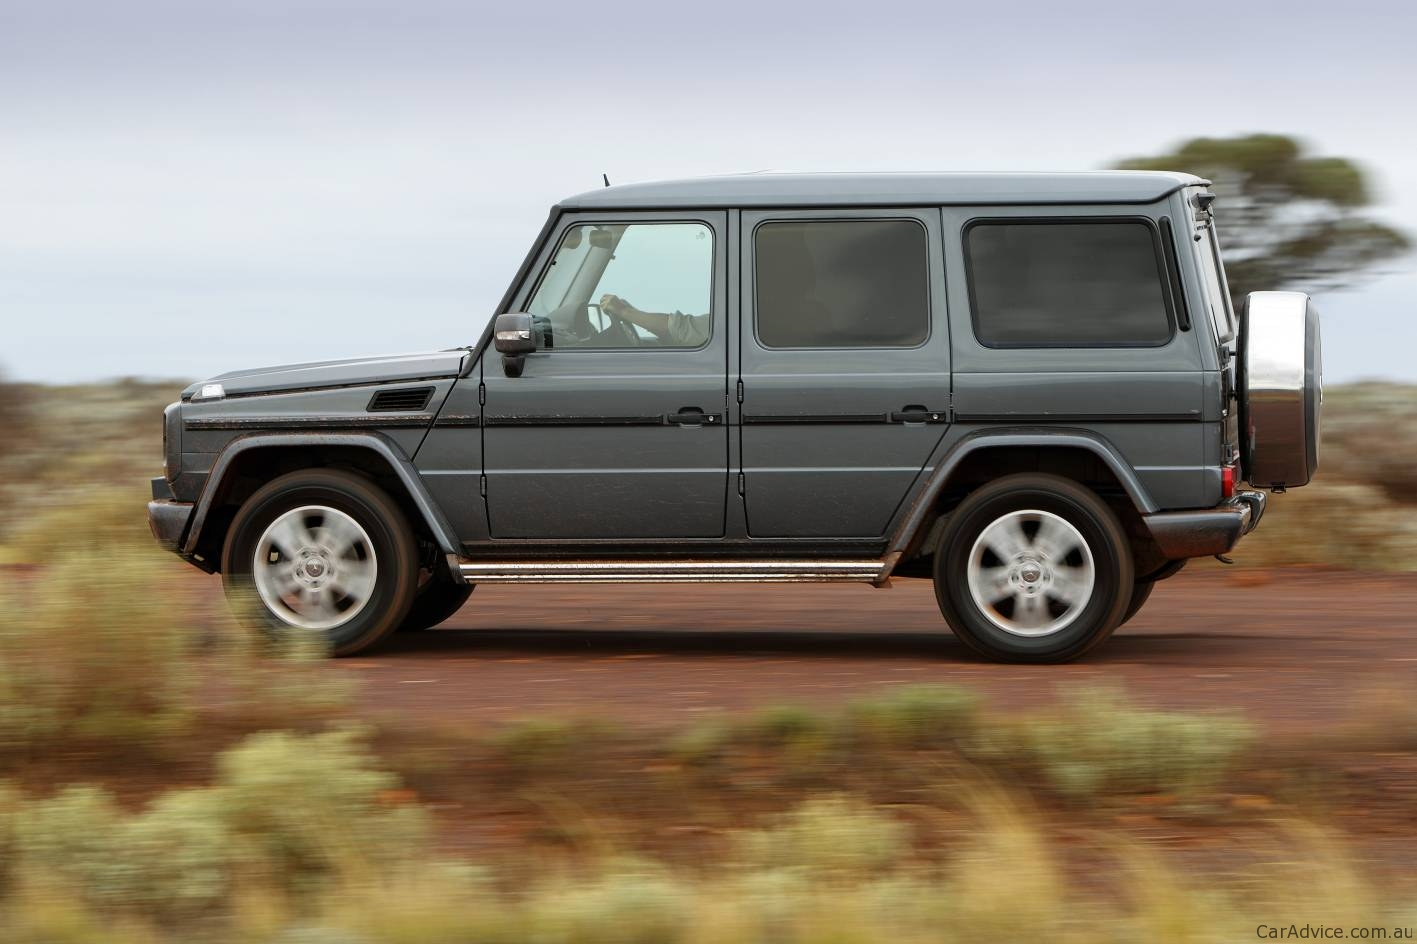 2011 mercedes benz g 350 bluetec and g 55 amg in australia for Mercedes benz g wagon price